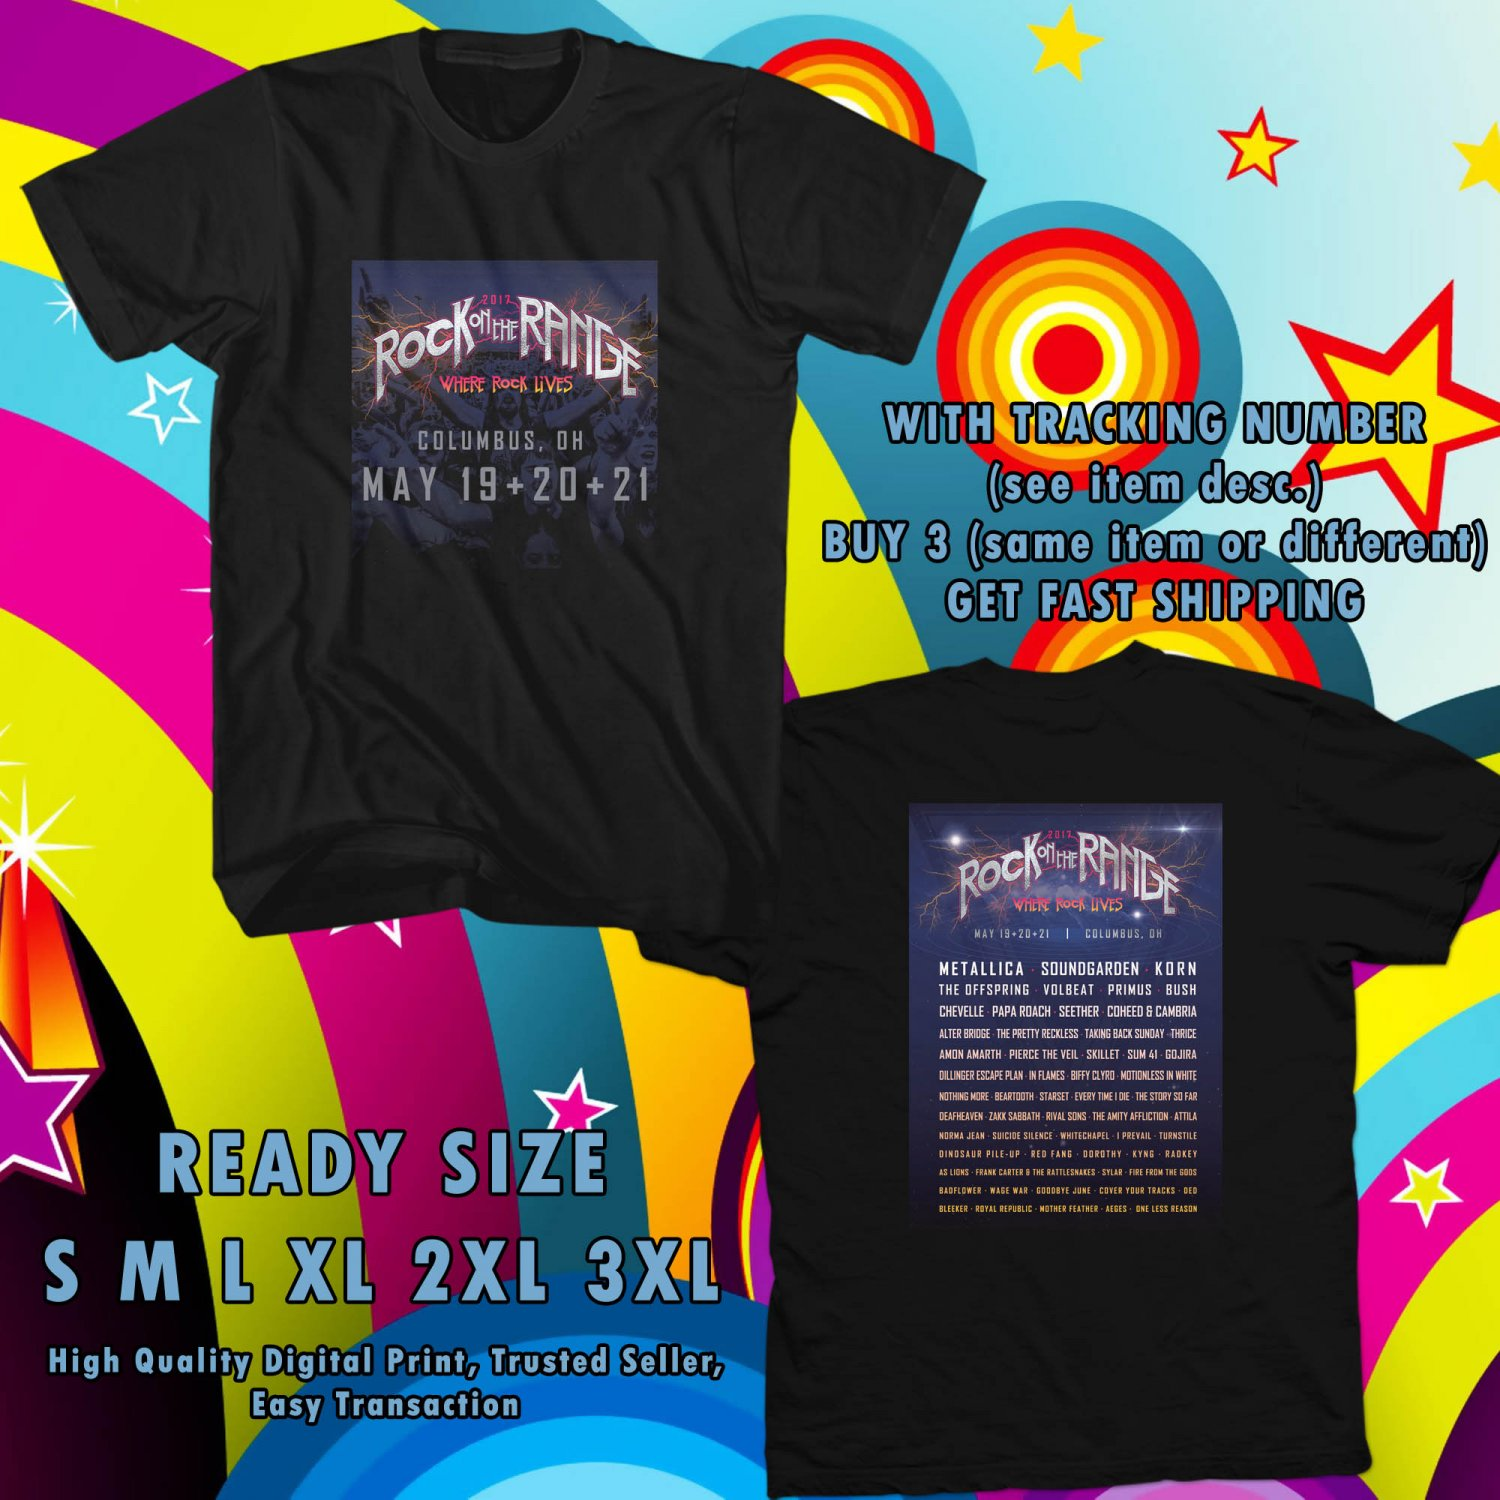 NEW ROCK ON THE RANGE FESTIVAL MAY 2017 black TEE W DATES DMTR